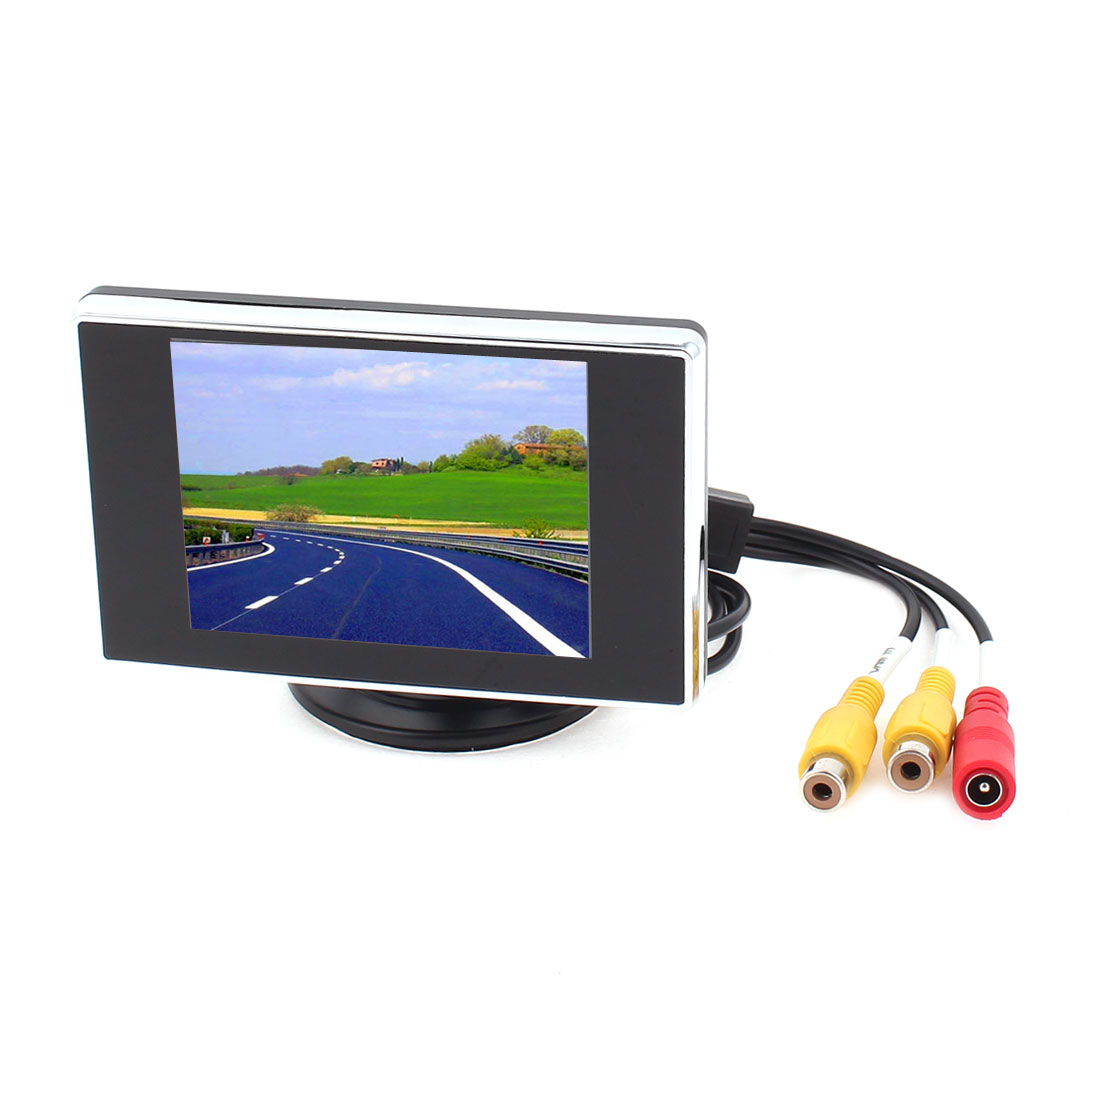 """Unique Bargains 3.5"""" Color LCD TFT Rear View Monitor DVD VCR Video System for Car Back Up Camera"""